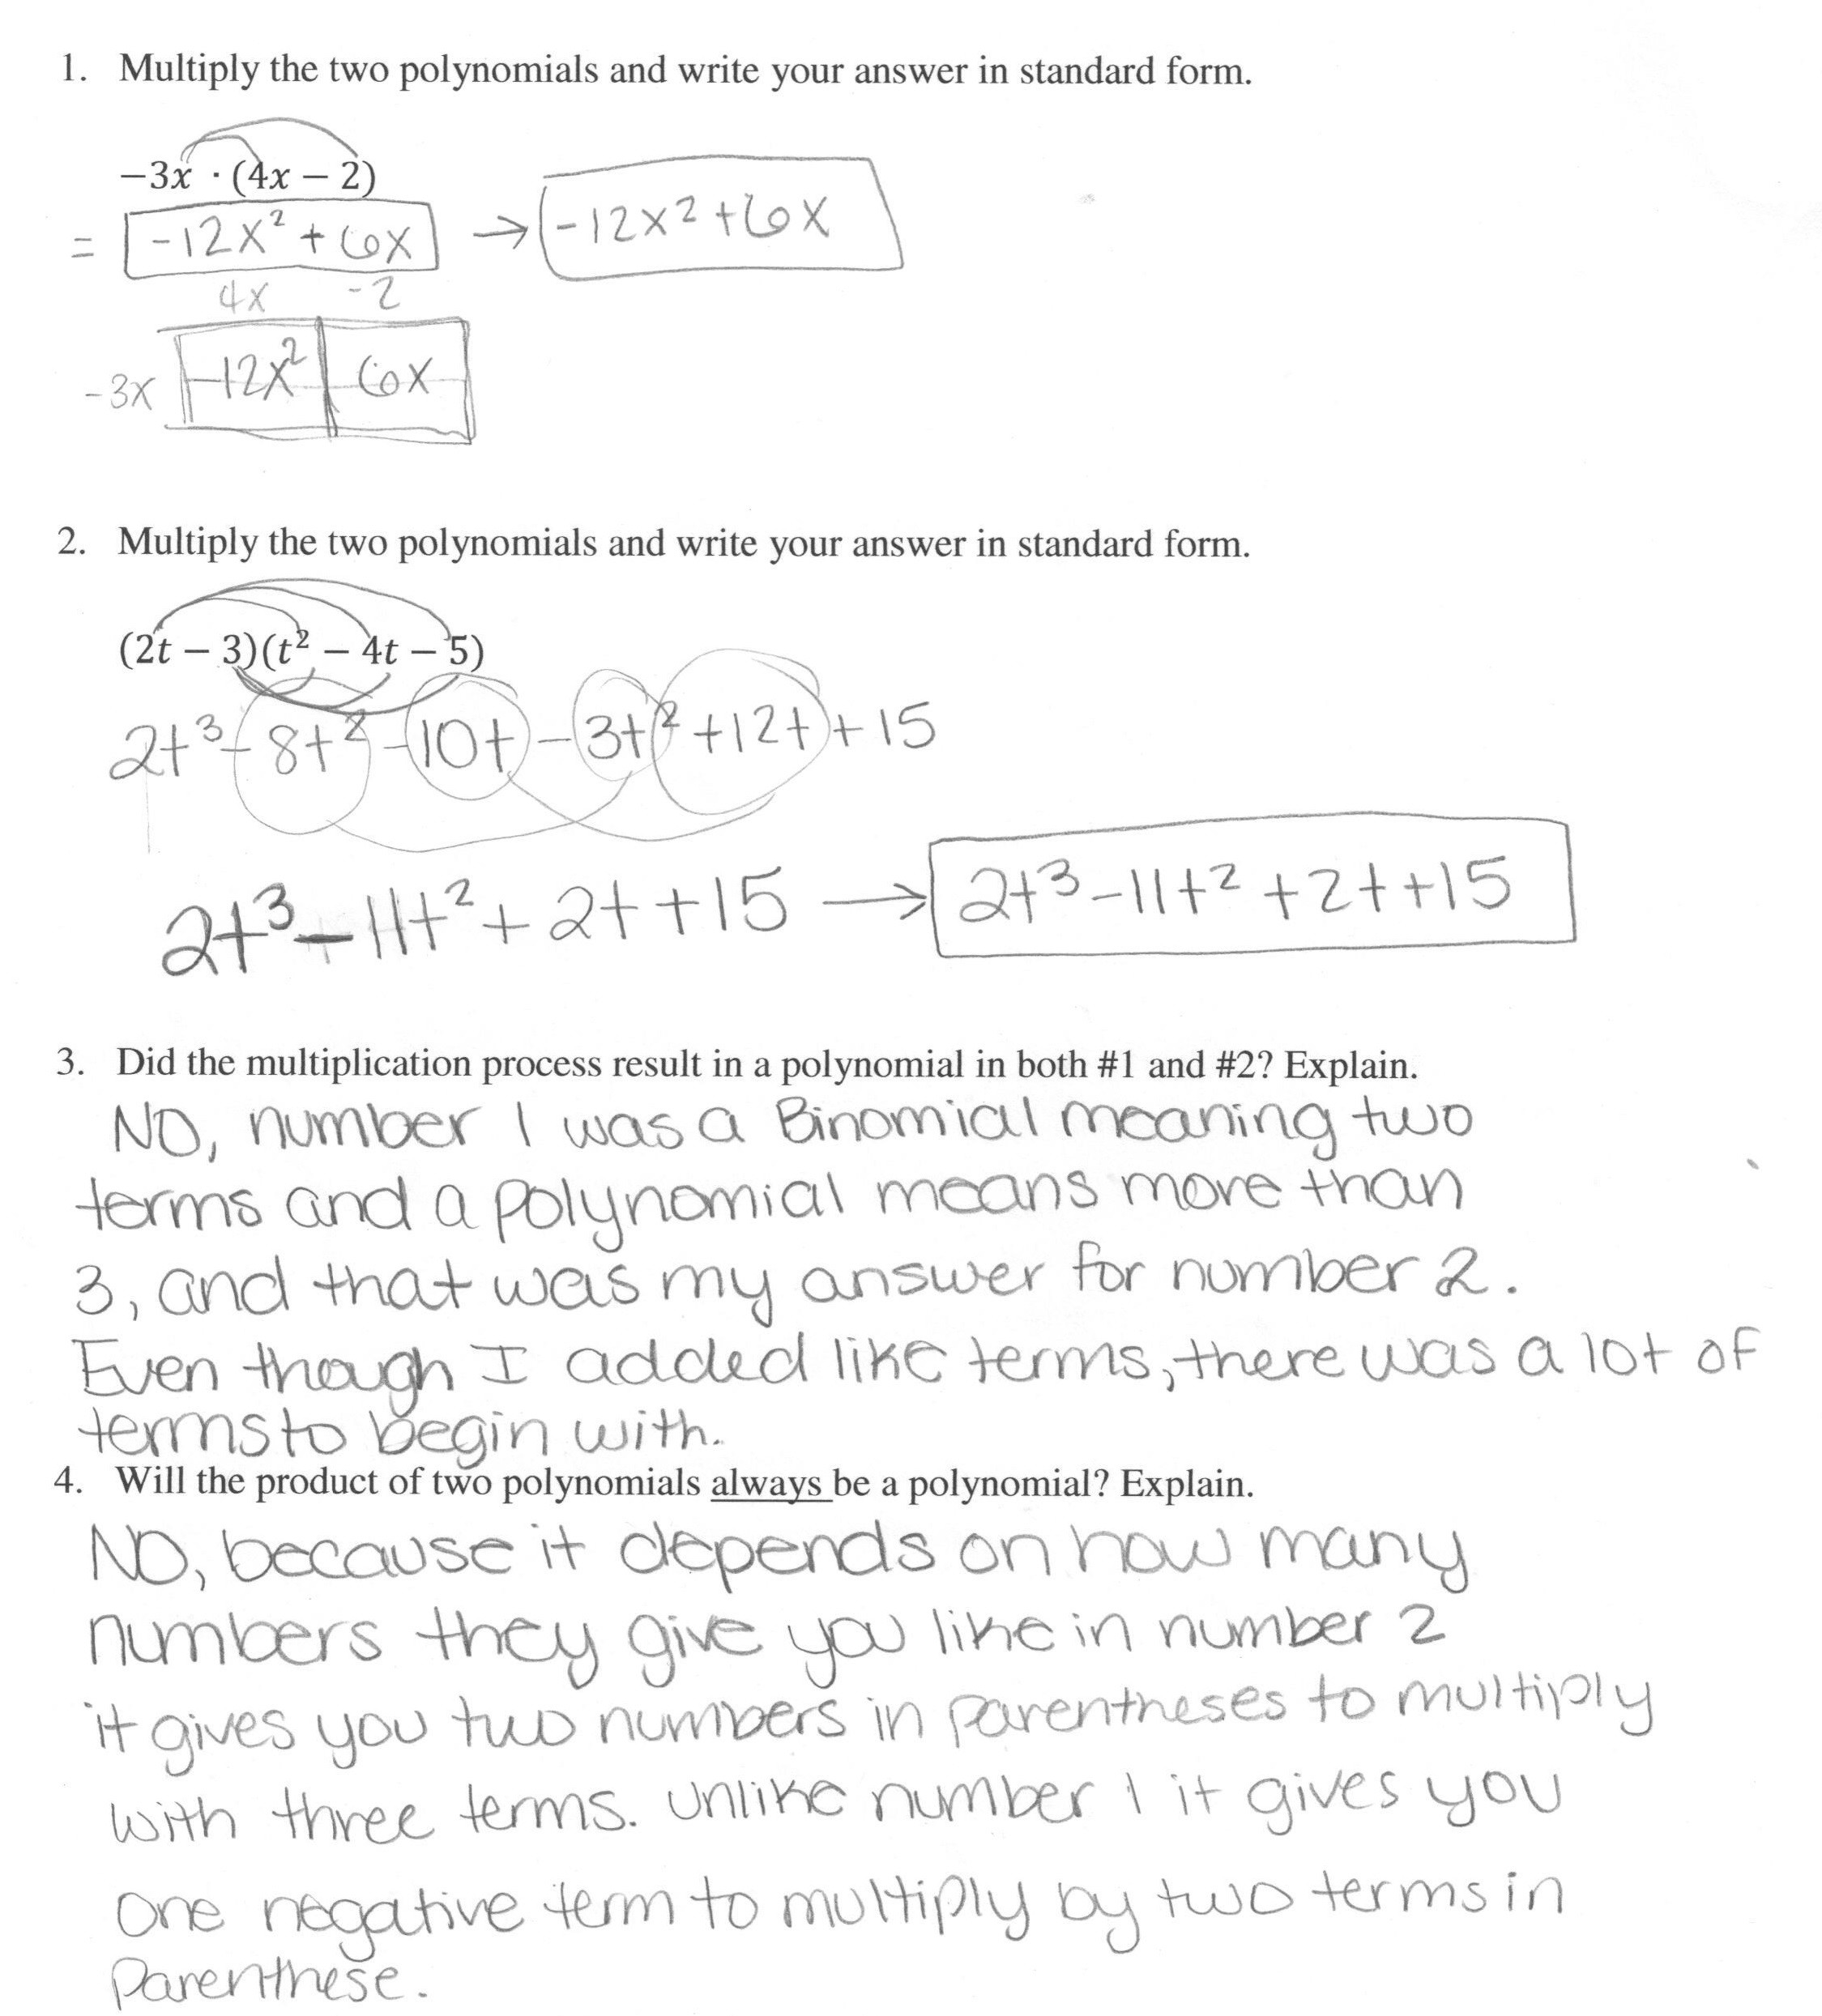 multiplying polynomials 1 students are asked to multiply